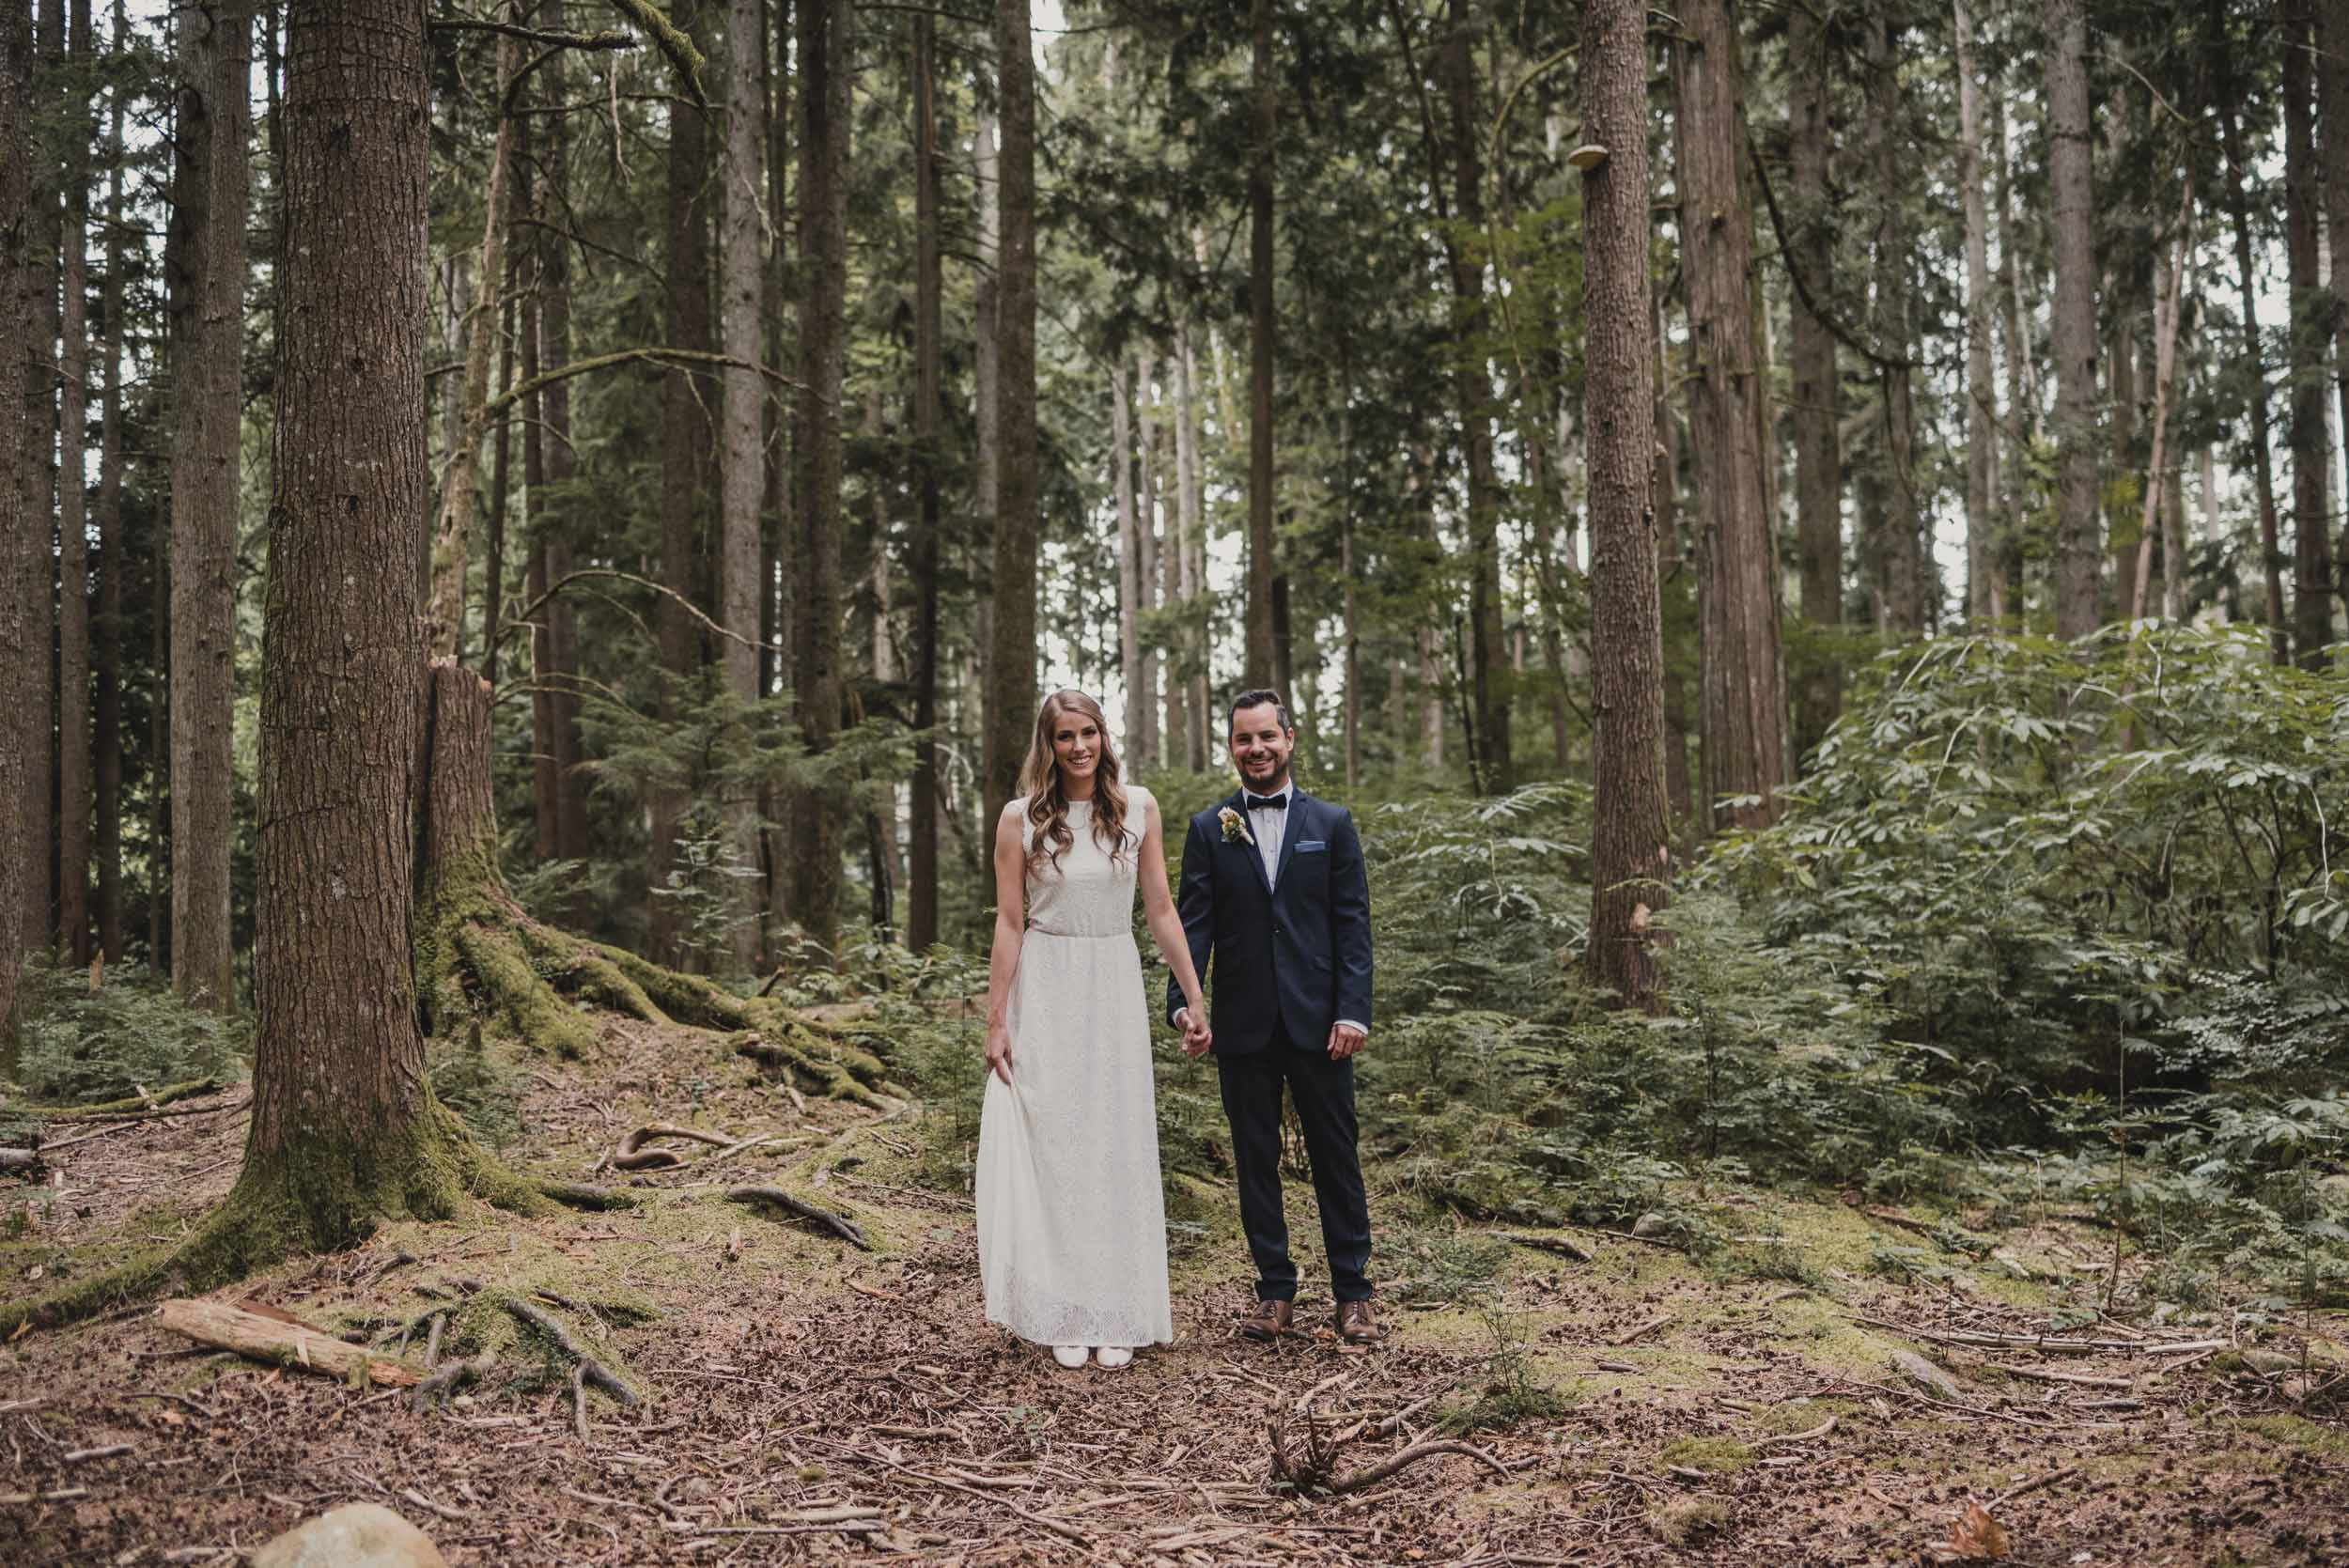 Bride and Groom side by side in forest